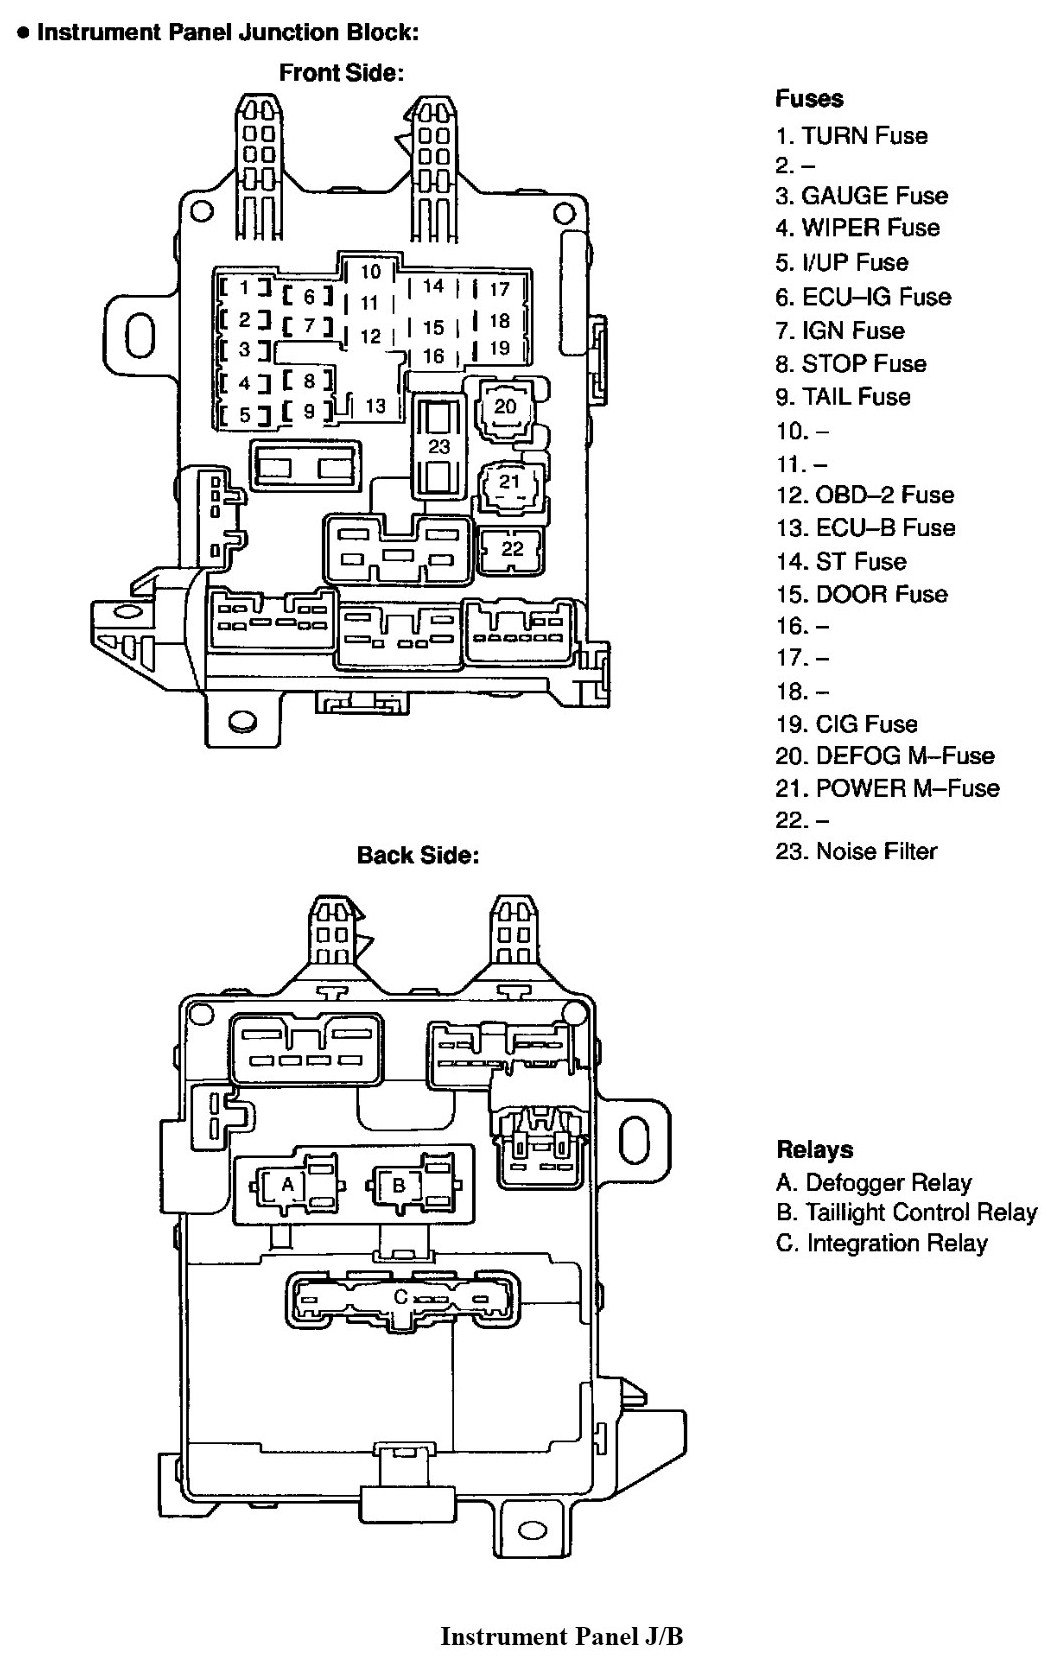 Ce Fuse Box Archive Of Automotive Wiring Diagram 07 Titan 2006 Corolla Schematic Rh Macro Program Com